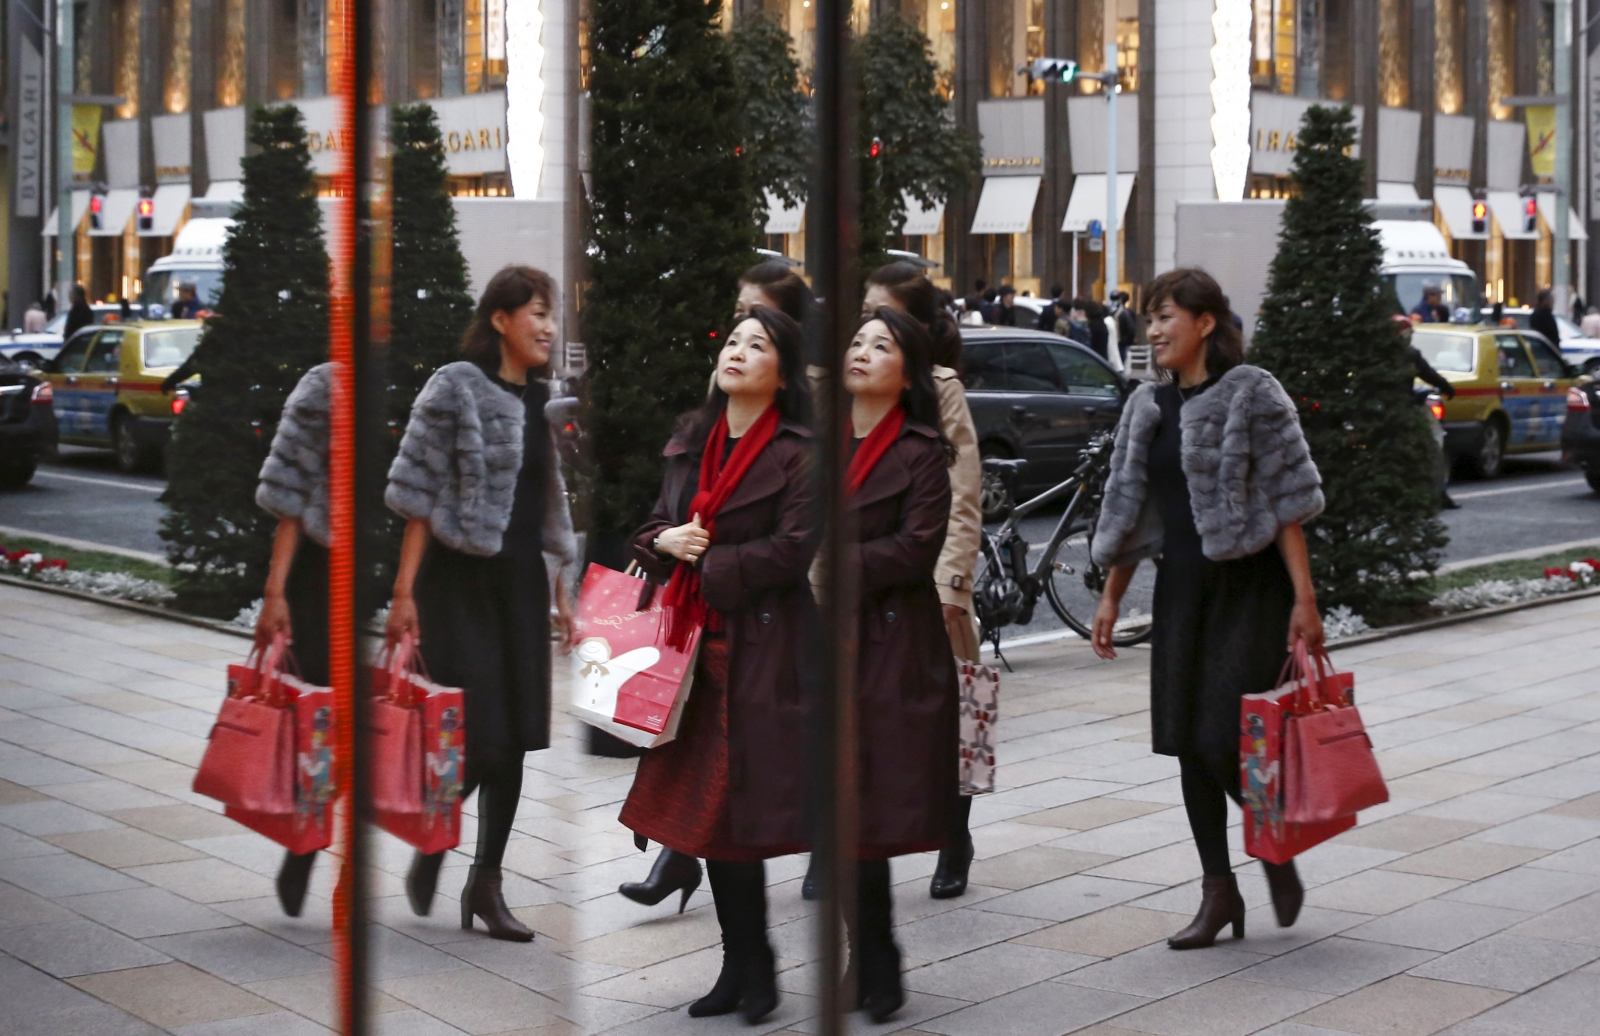 United Kingdom consumers keep spending despite expectations of a post-Brexit slump